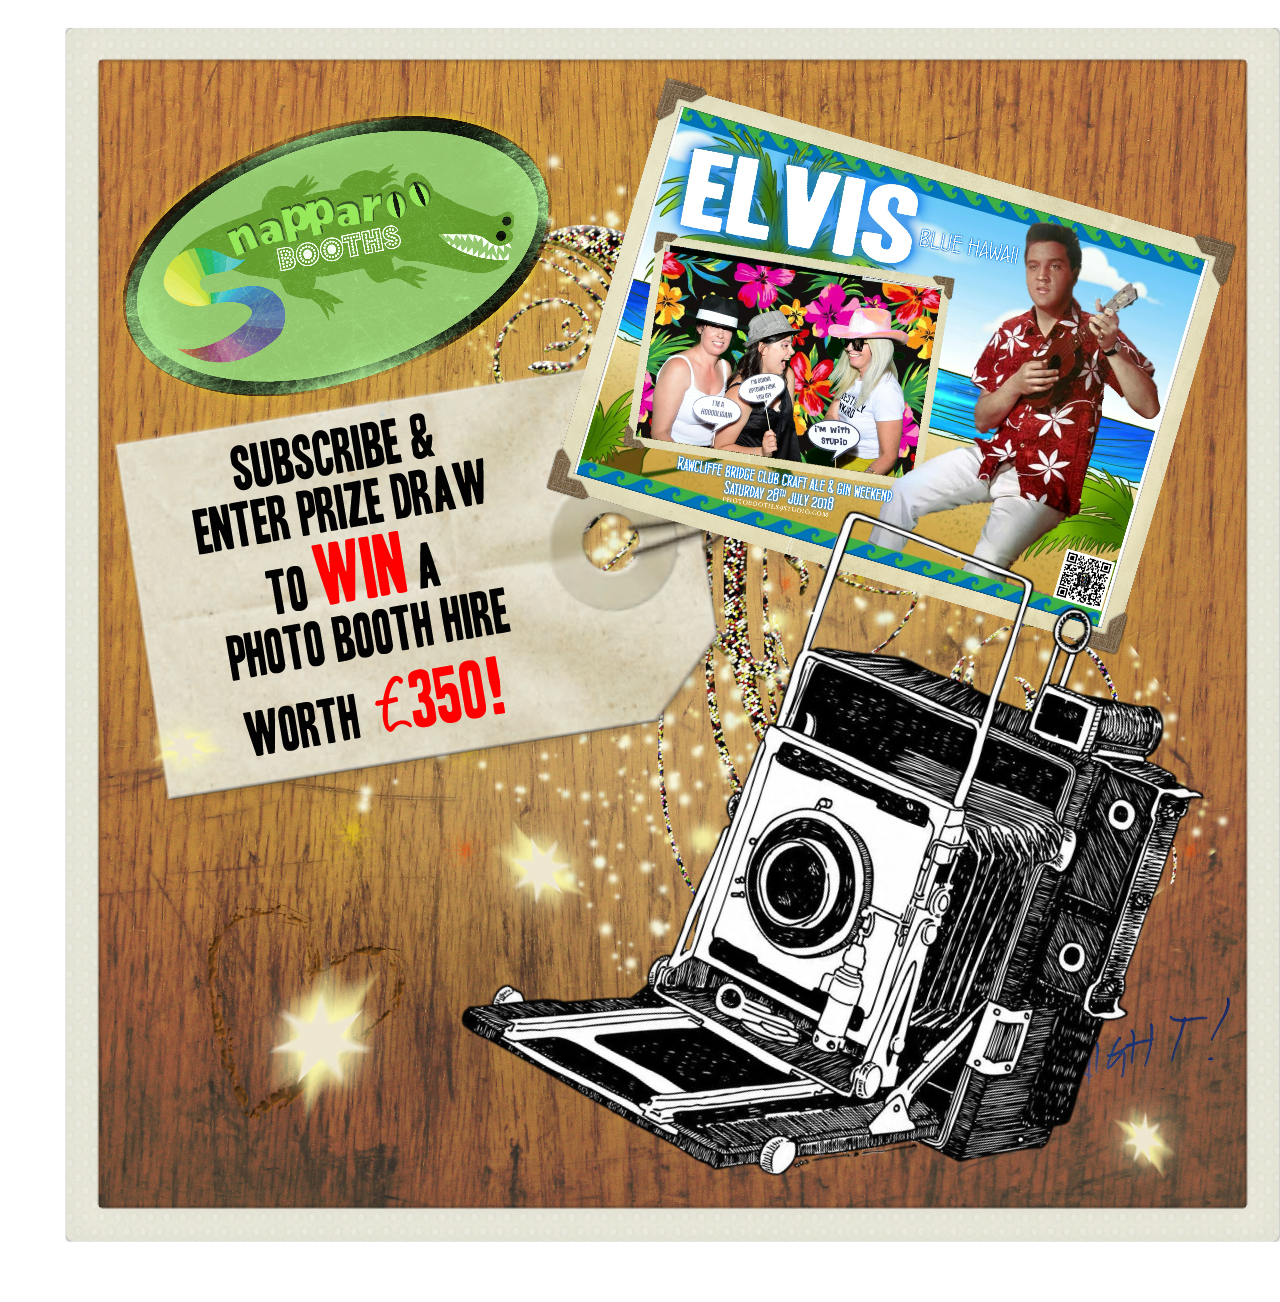 WIN A PHOTO BOOTH HIRE!